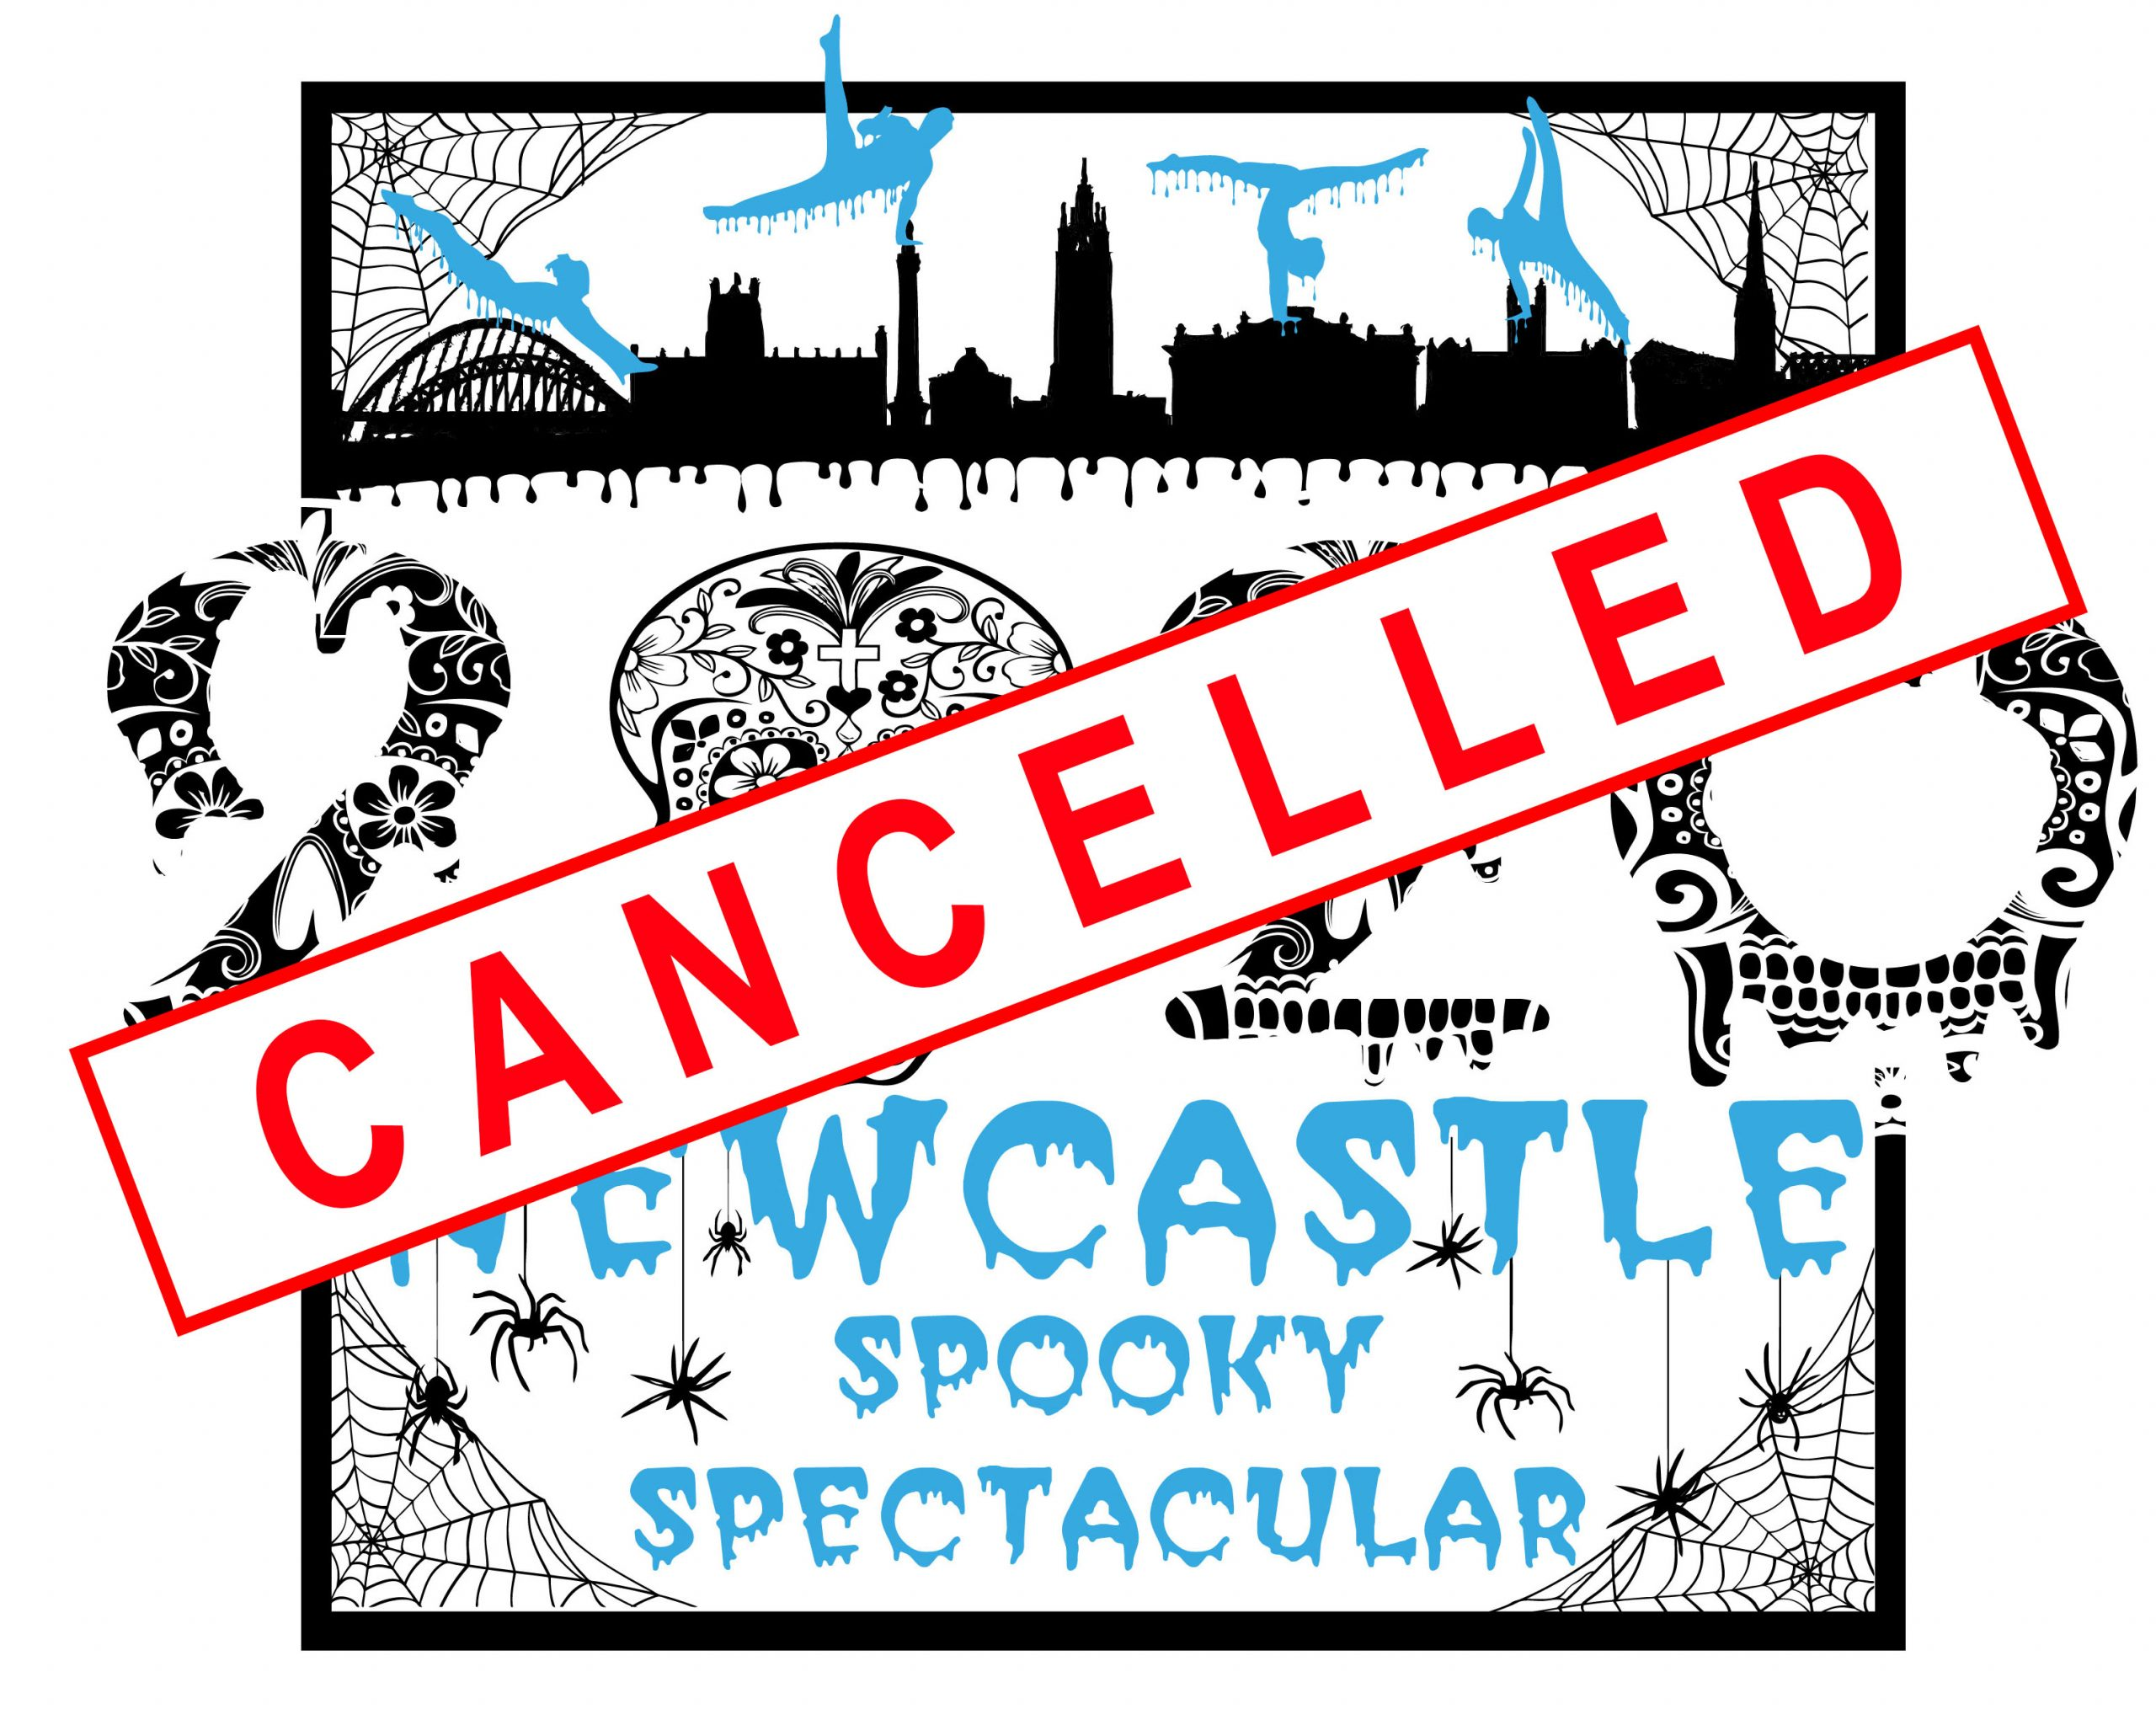 Spooky Spectacular 2020 - CANCELLED